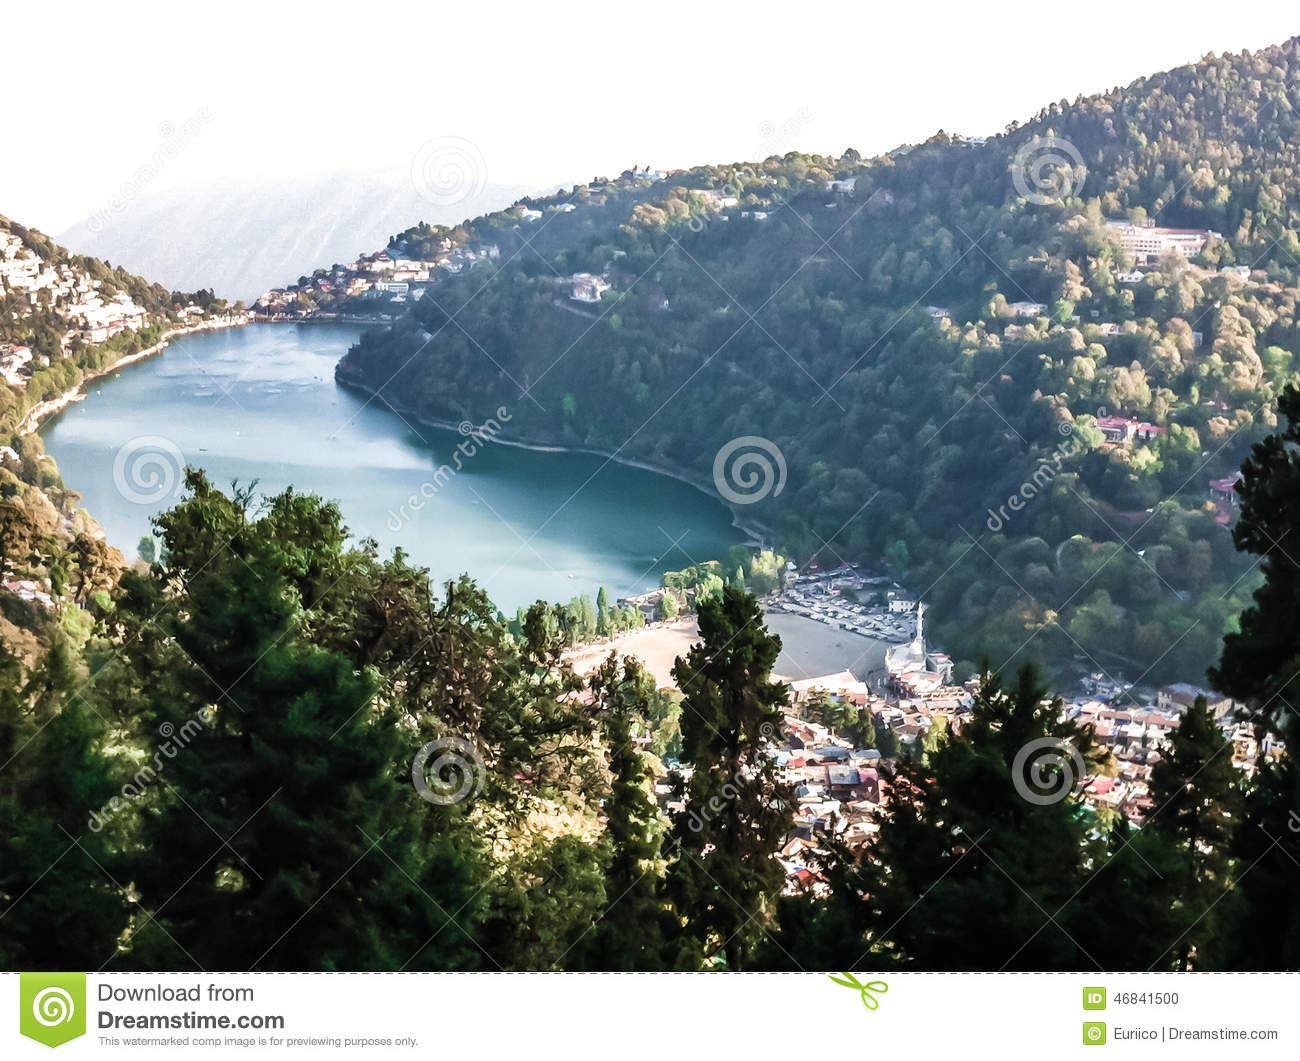 Nainital india pictures | download free images on unsplash.